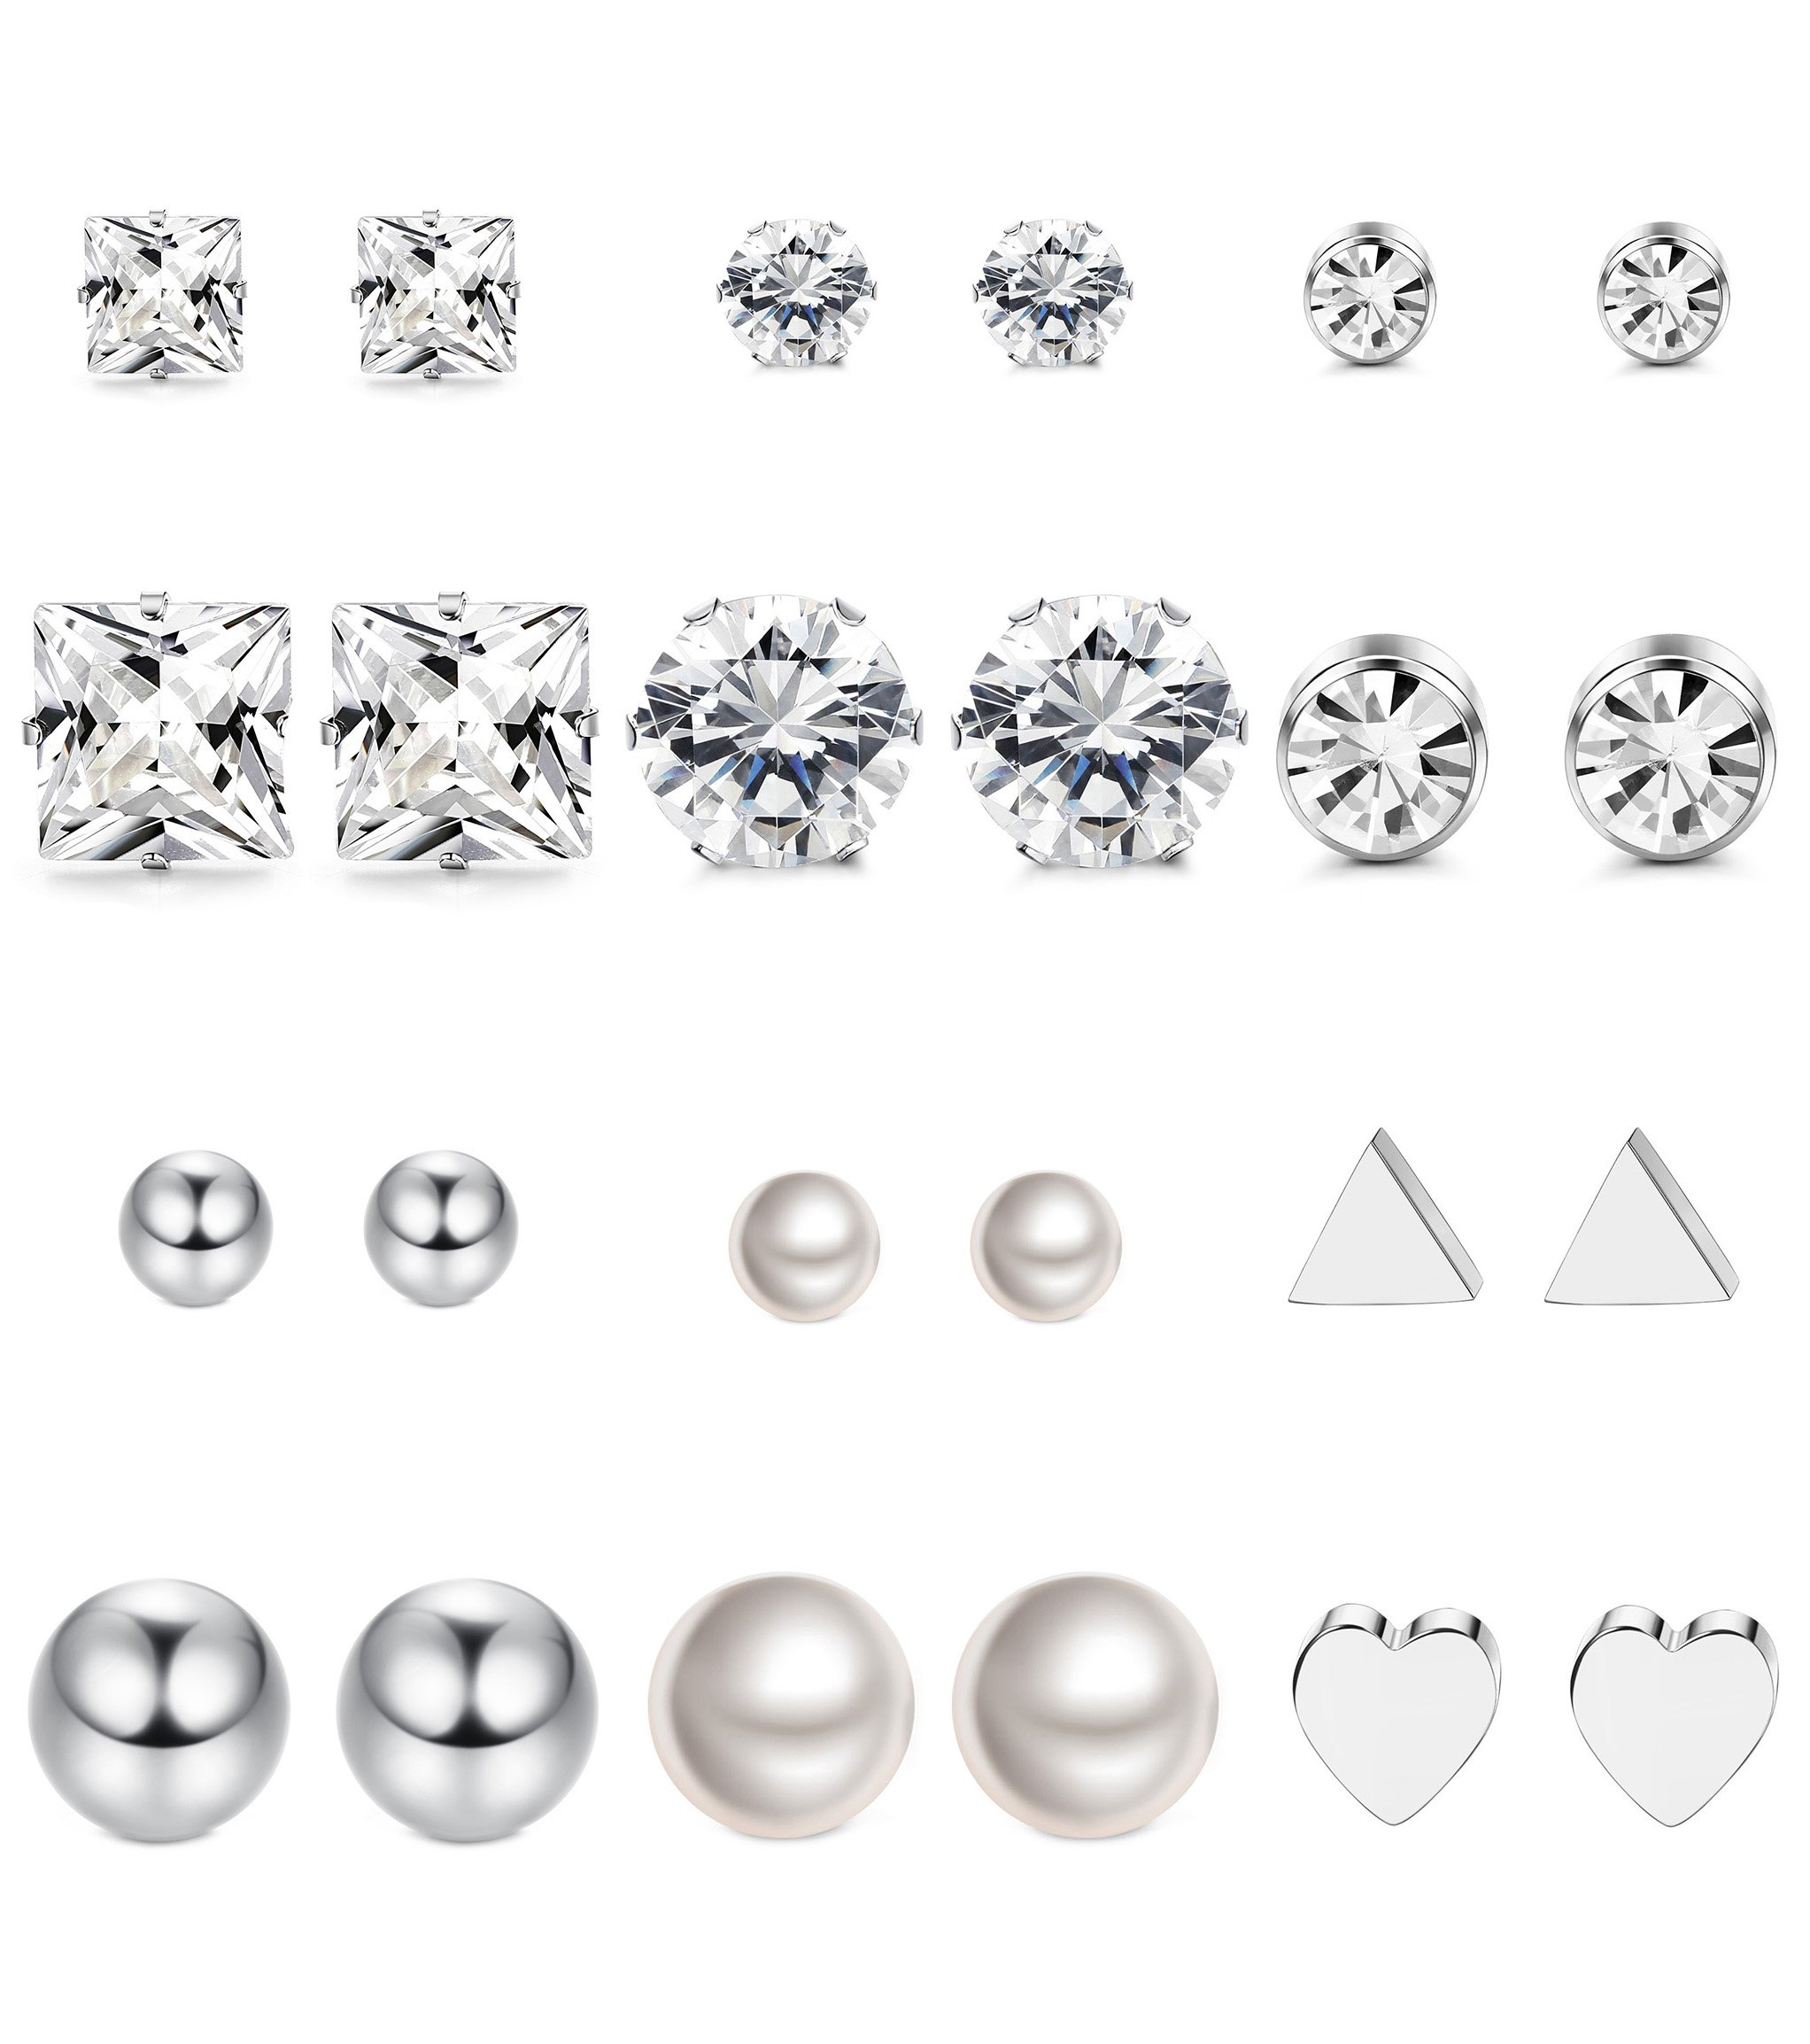 Thunaraz 12Pairs Surgical Steel Stud Earring Set Fake Pearl Earring Ball Triangle Heart CZ Earring Kit